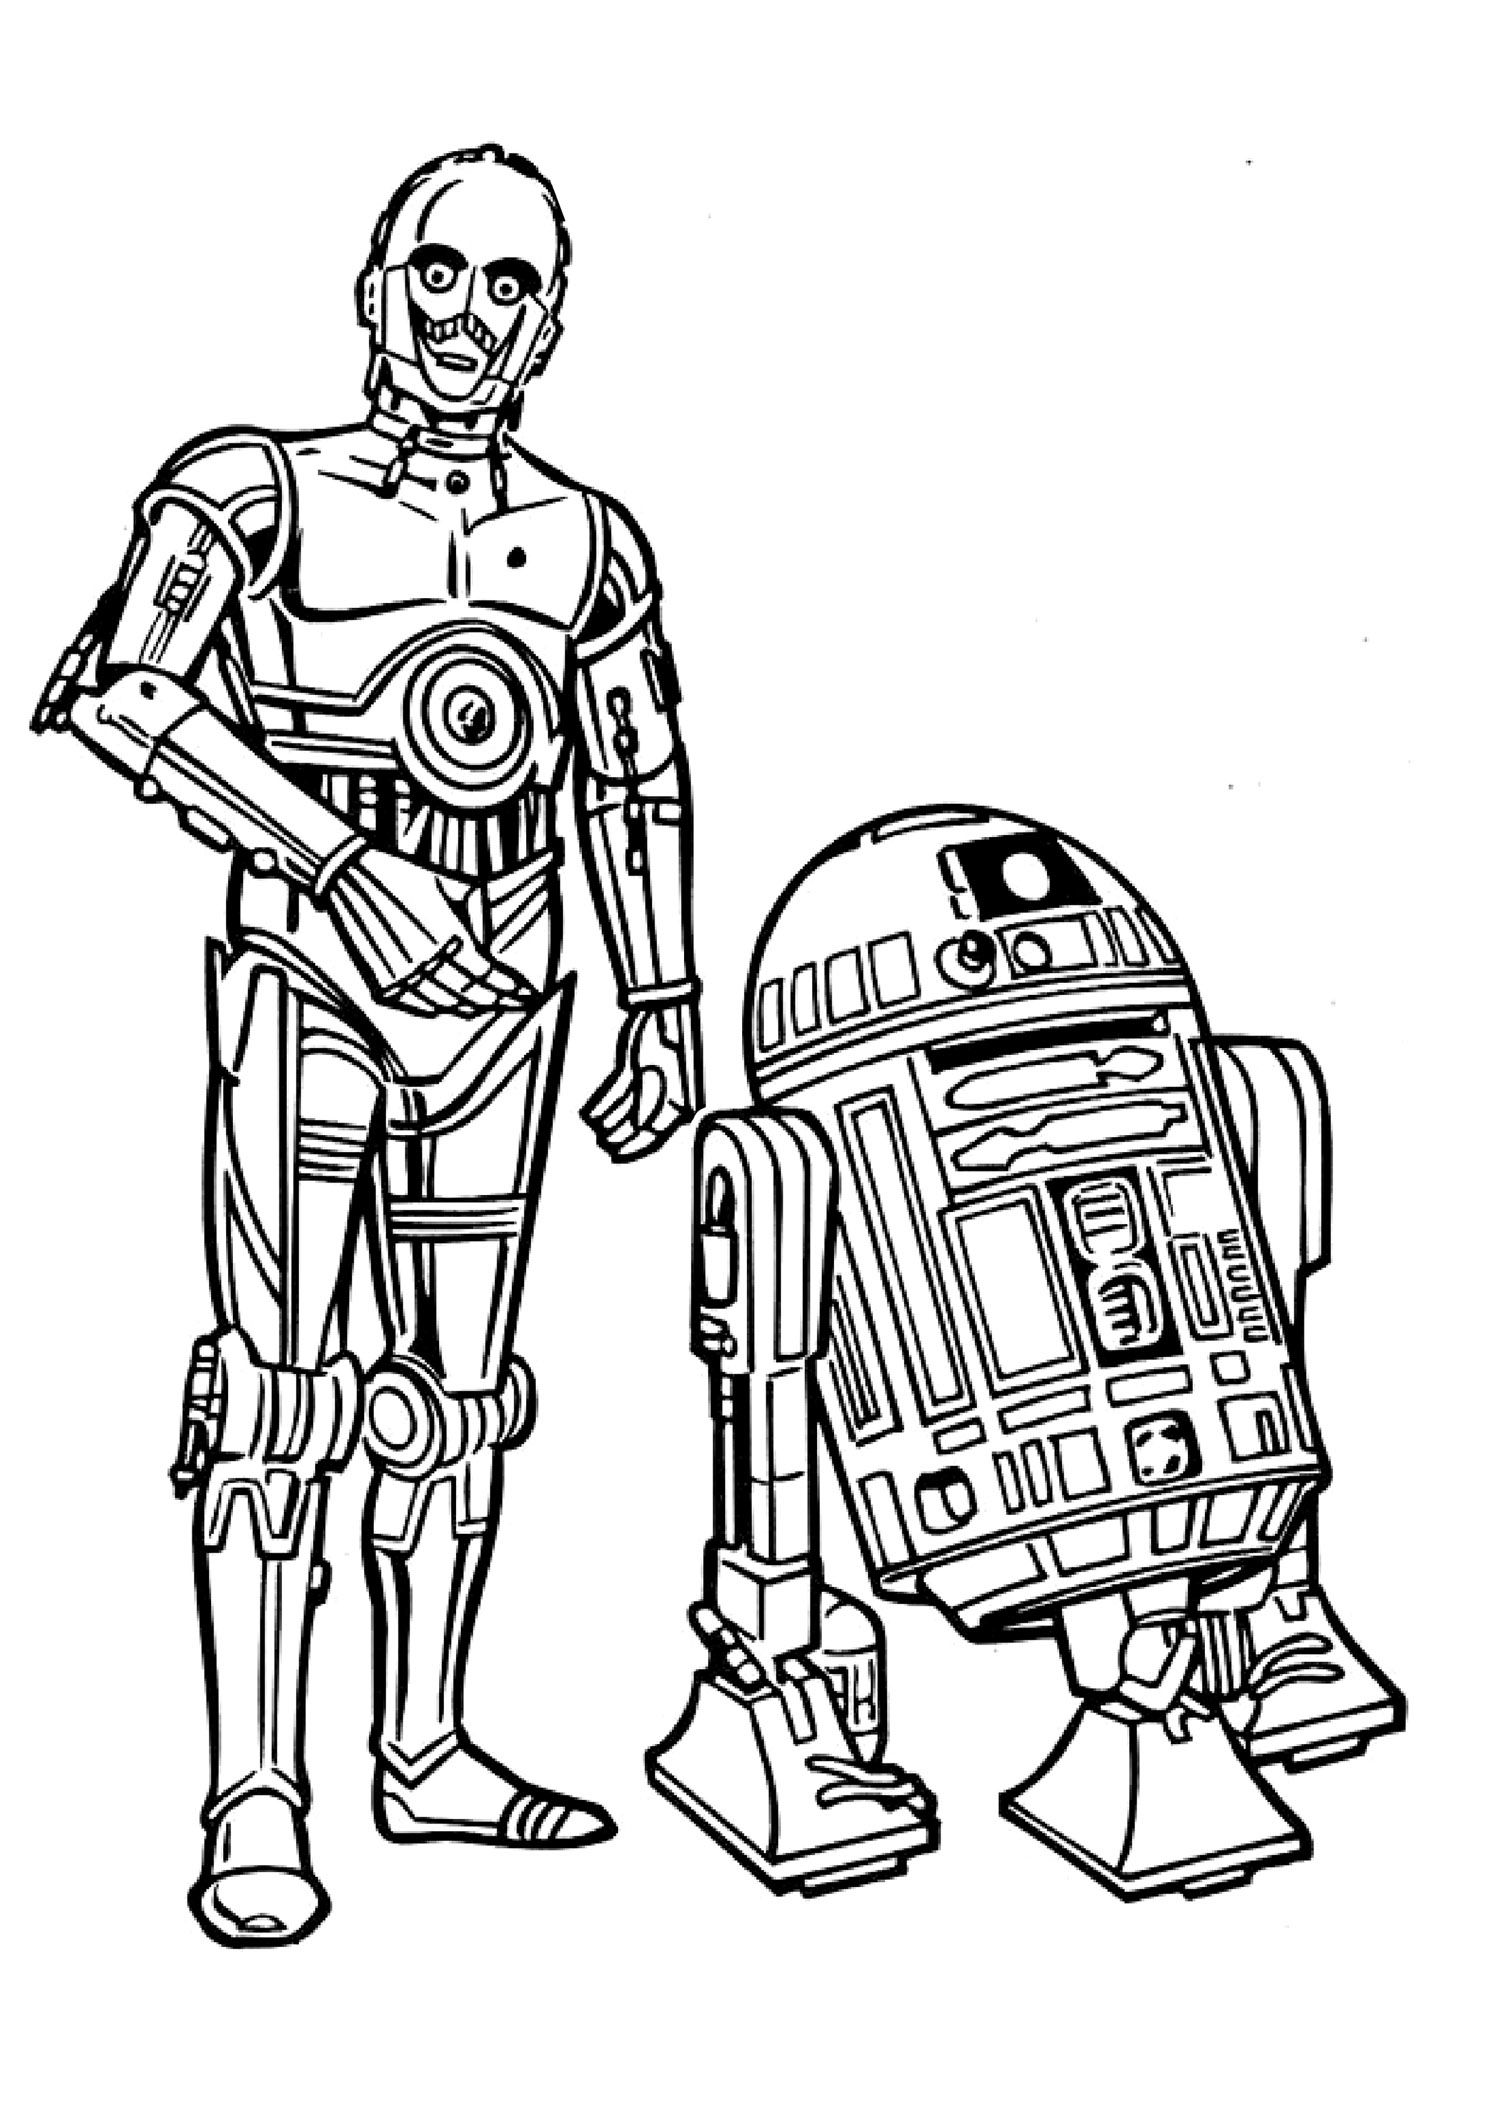 R2d2 And C3po Drawing c3po drawings | Termes...